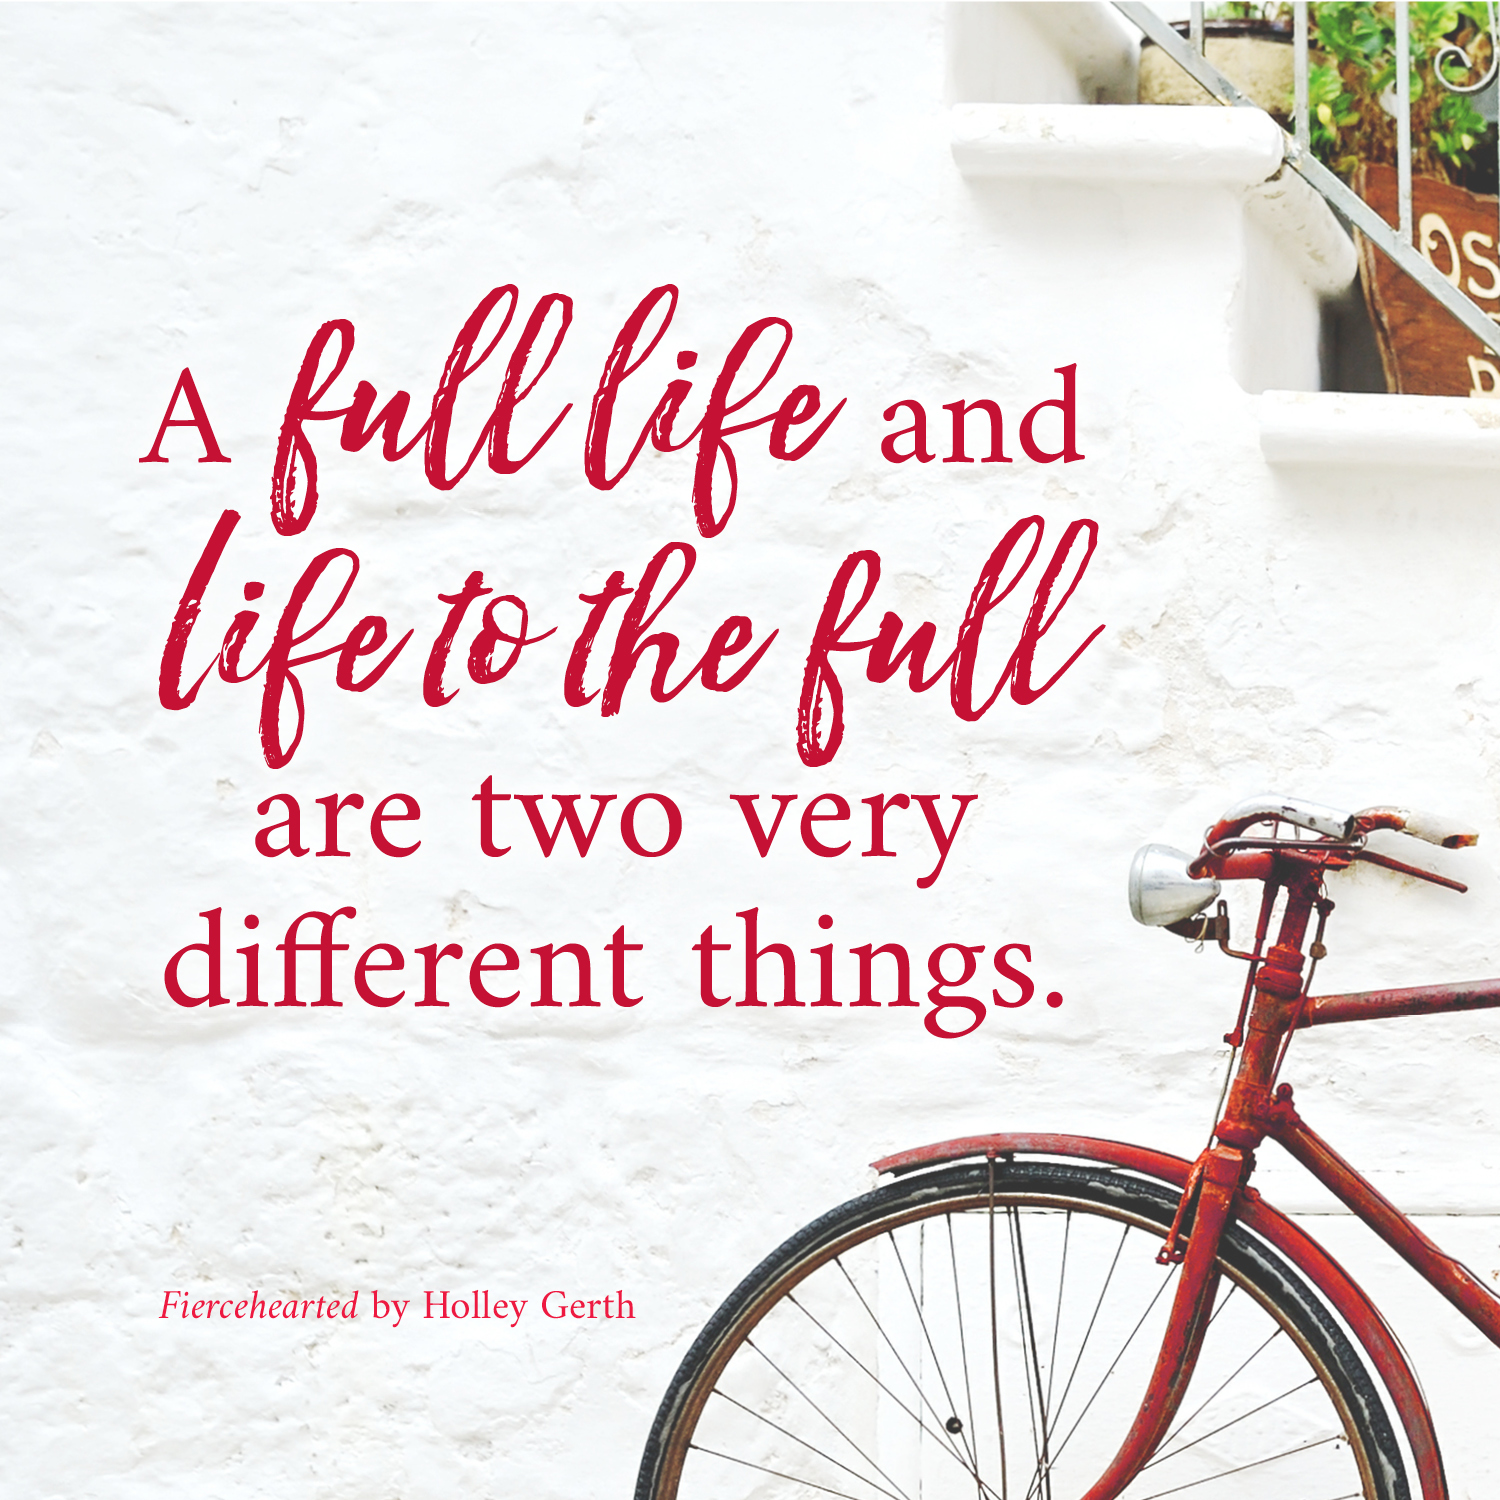 A full life and life to the full are two very different things.